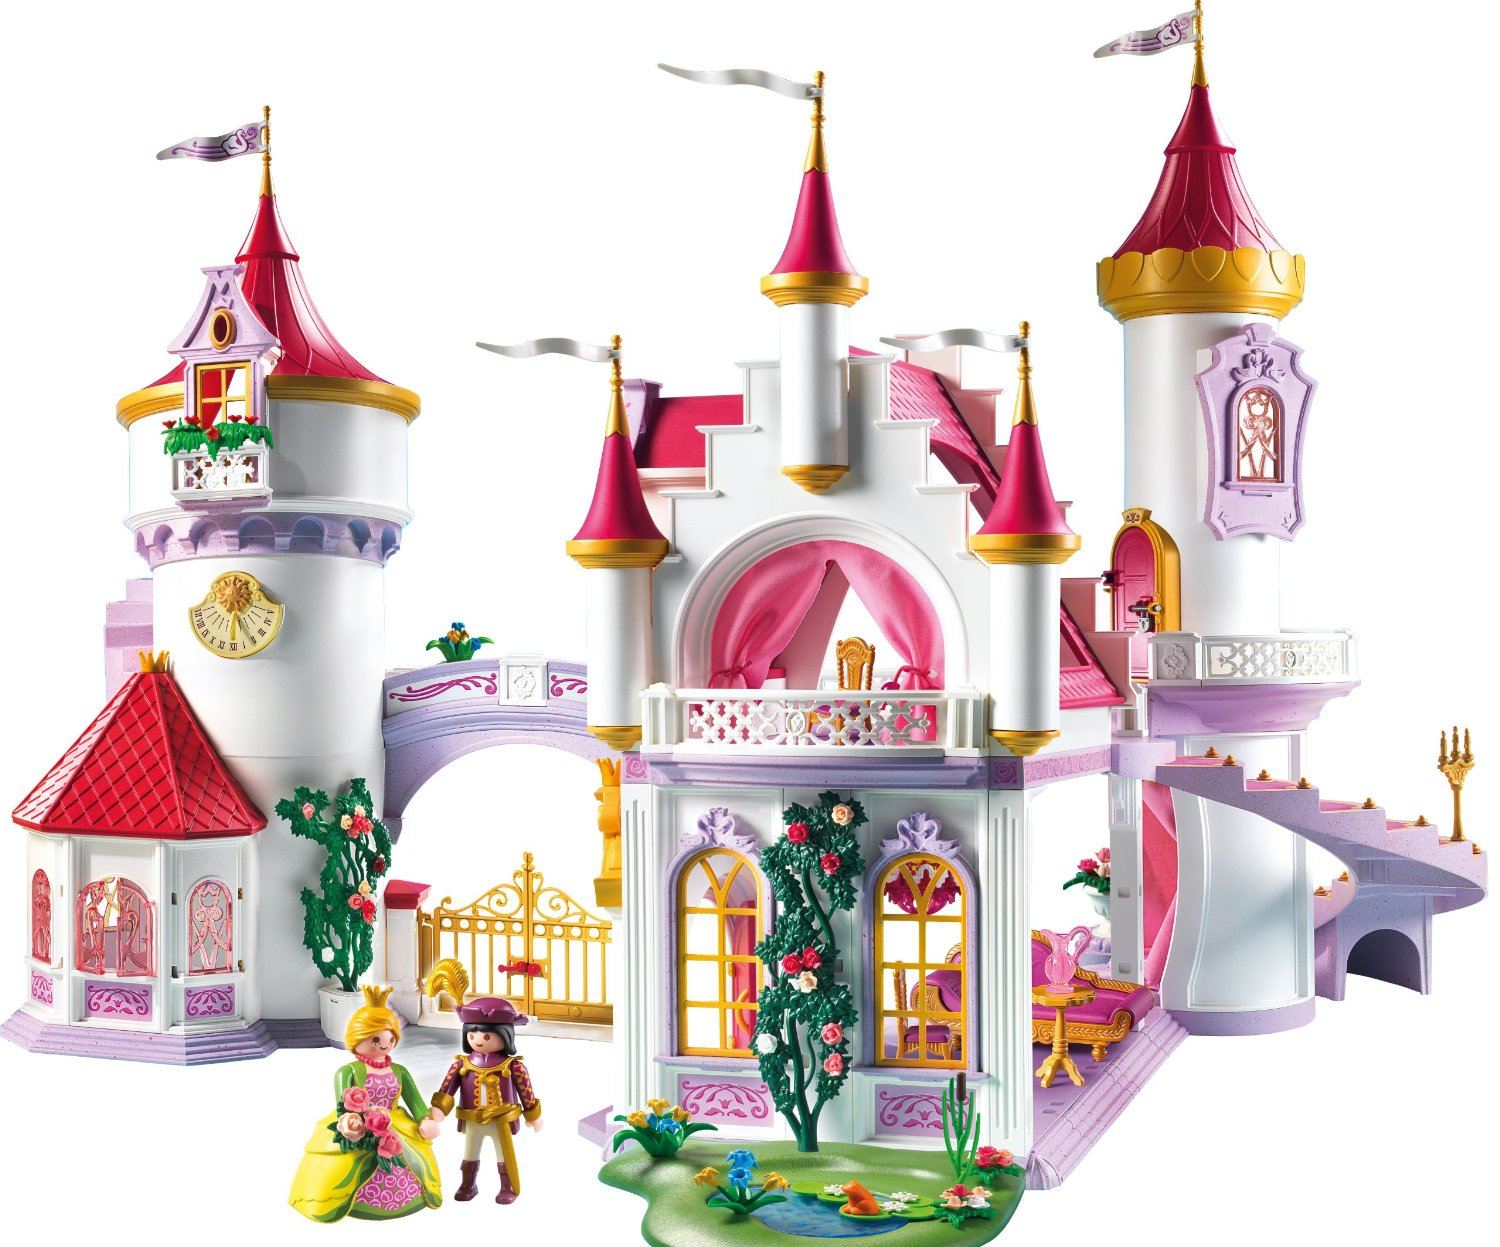 Playmobil Sets For Girls